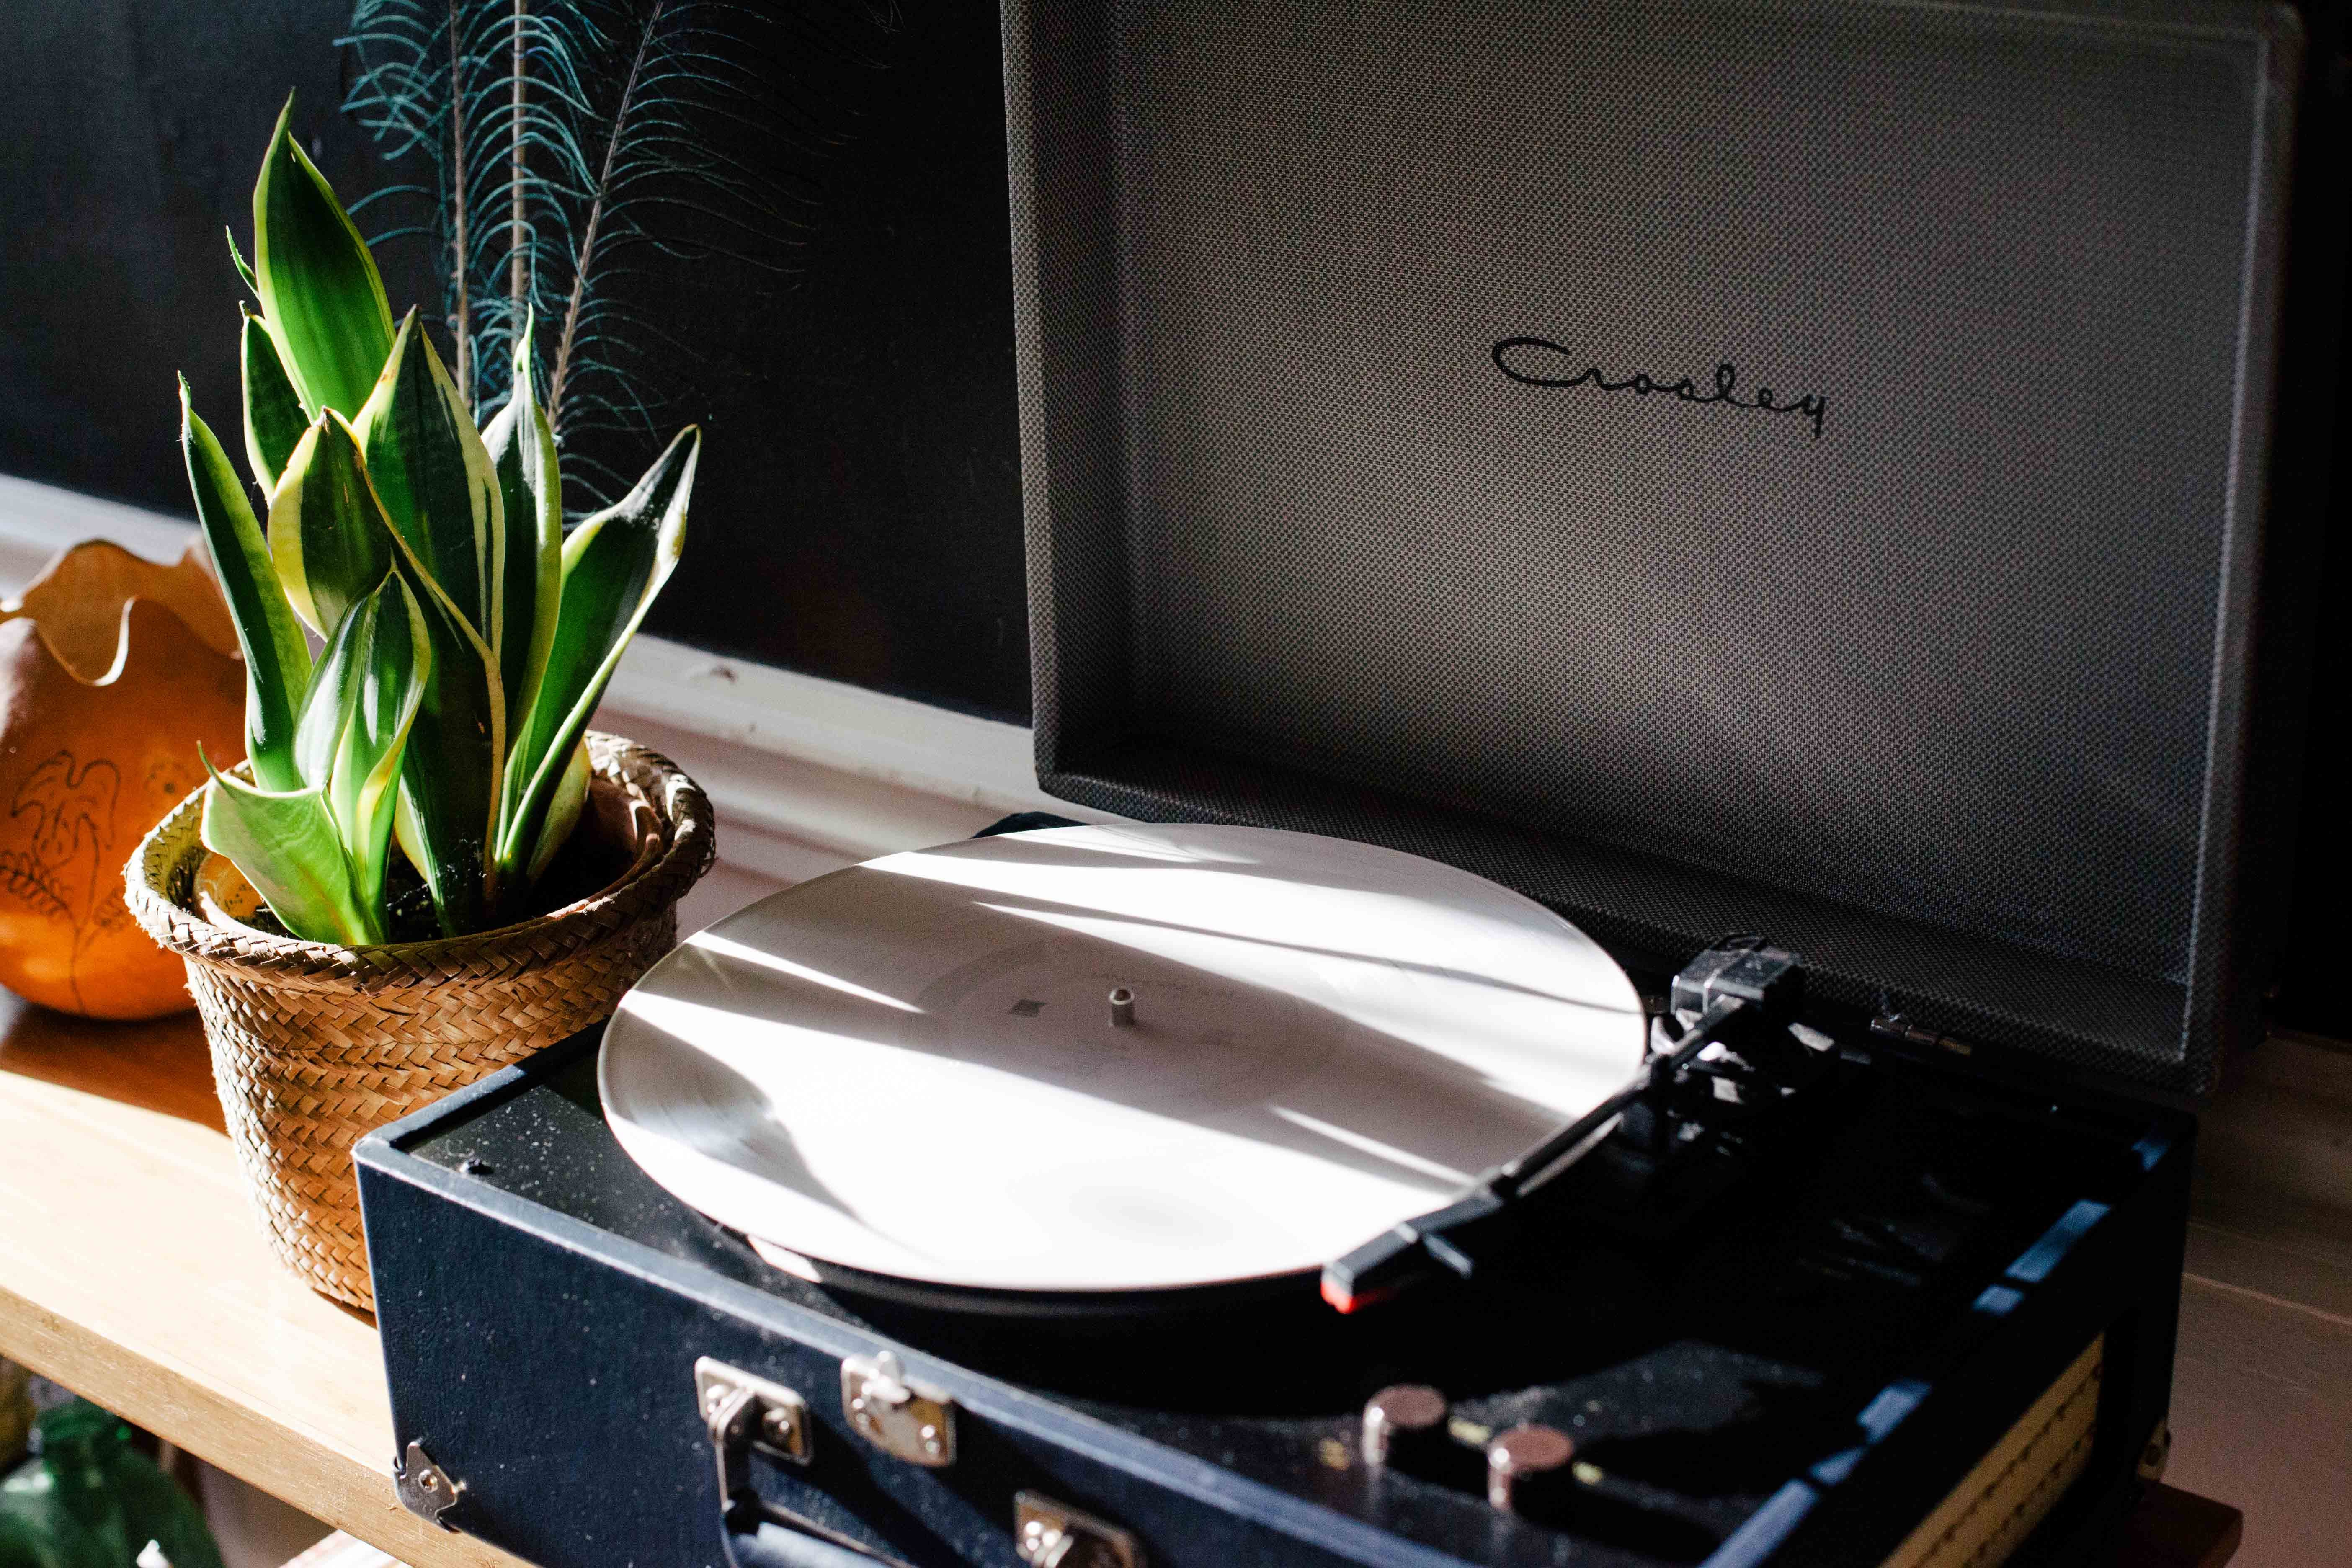 Black and White Crosley Vinyl Record Player on White Wooden Frame